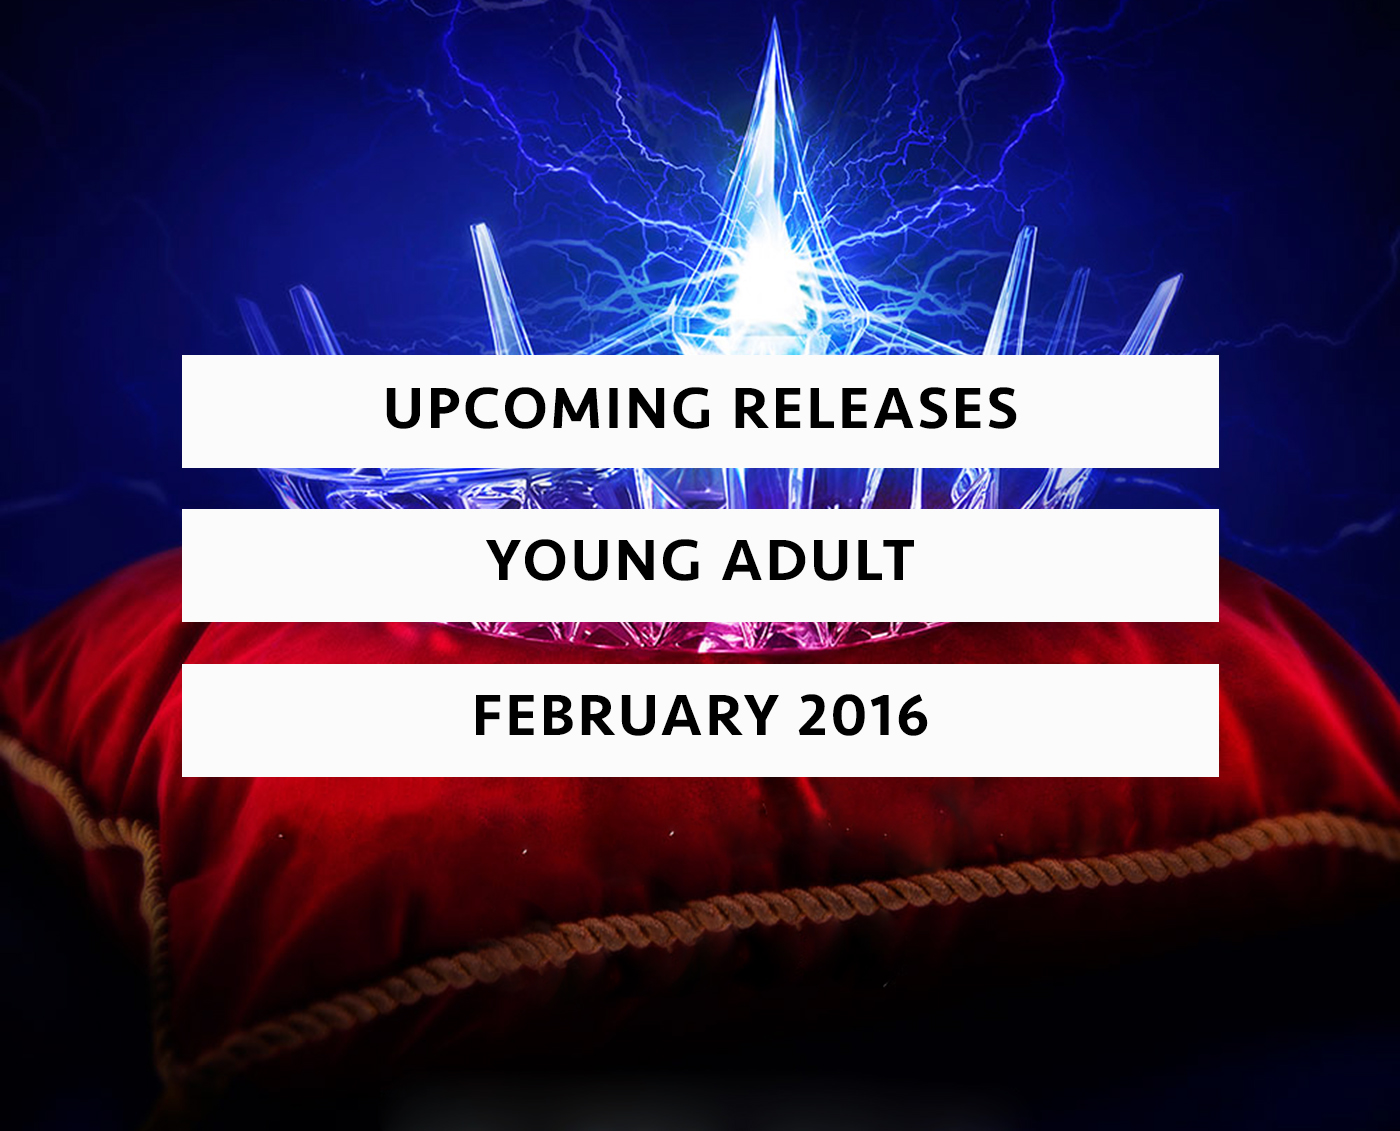 Upcoming Releases February 2016